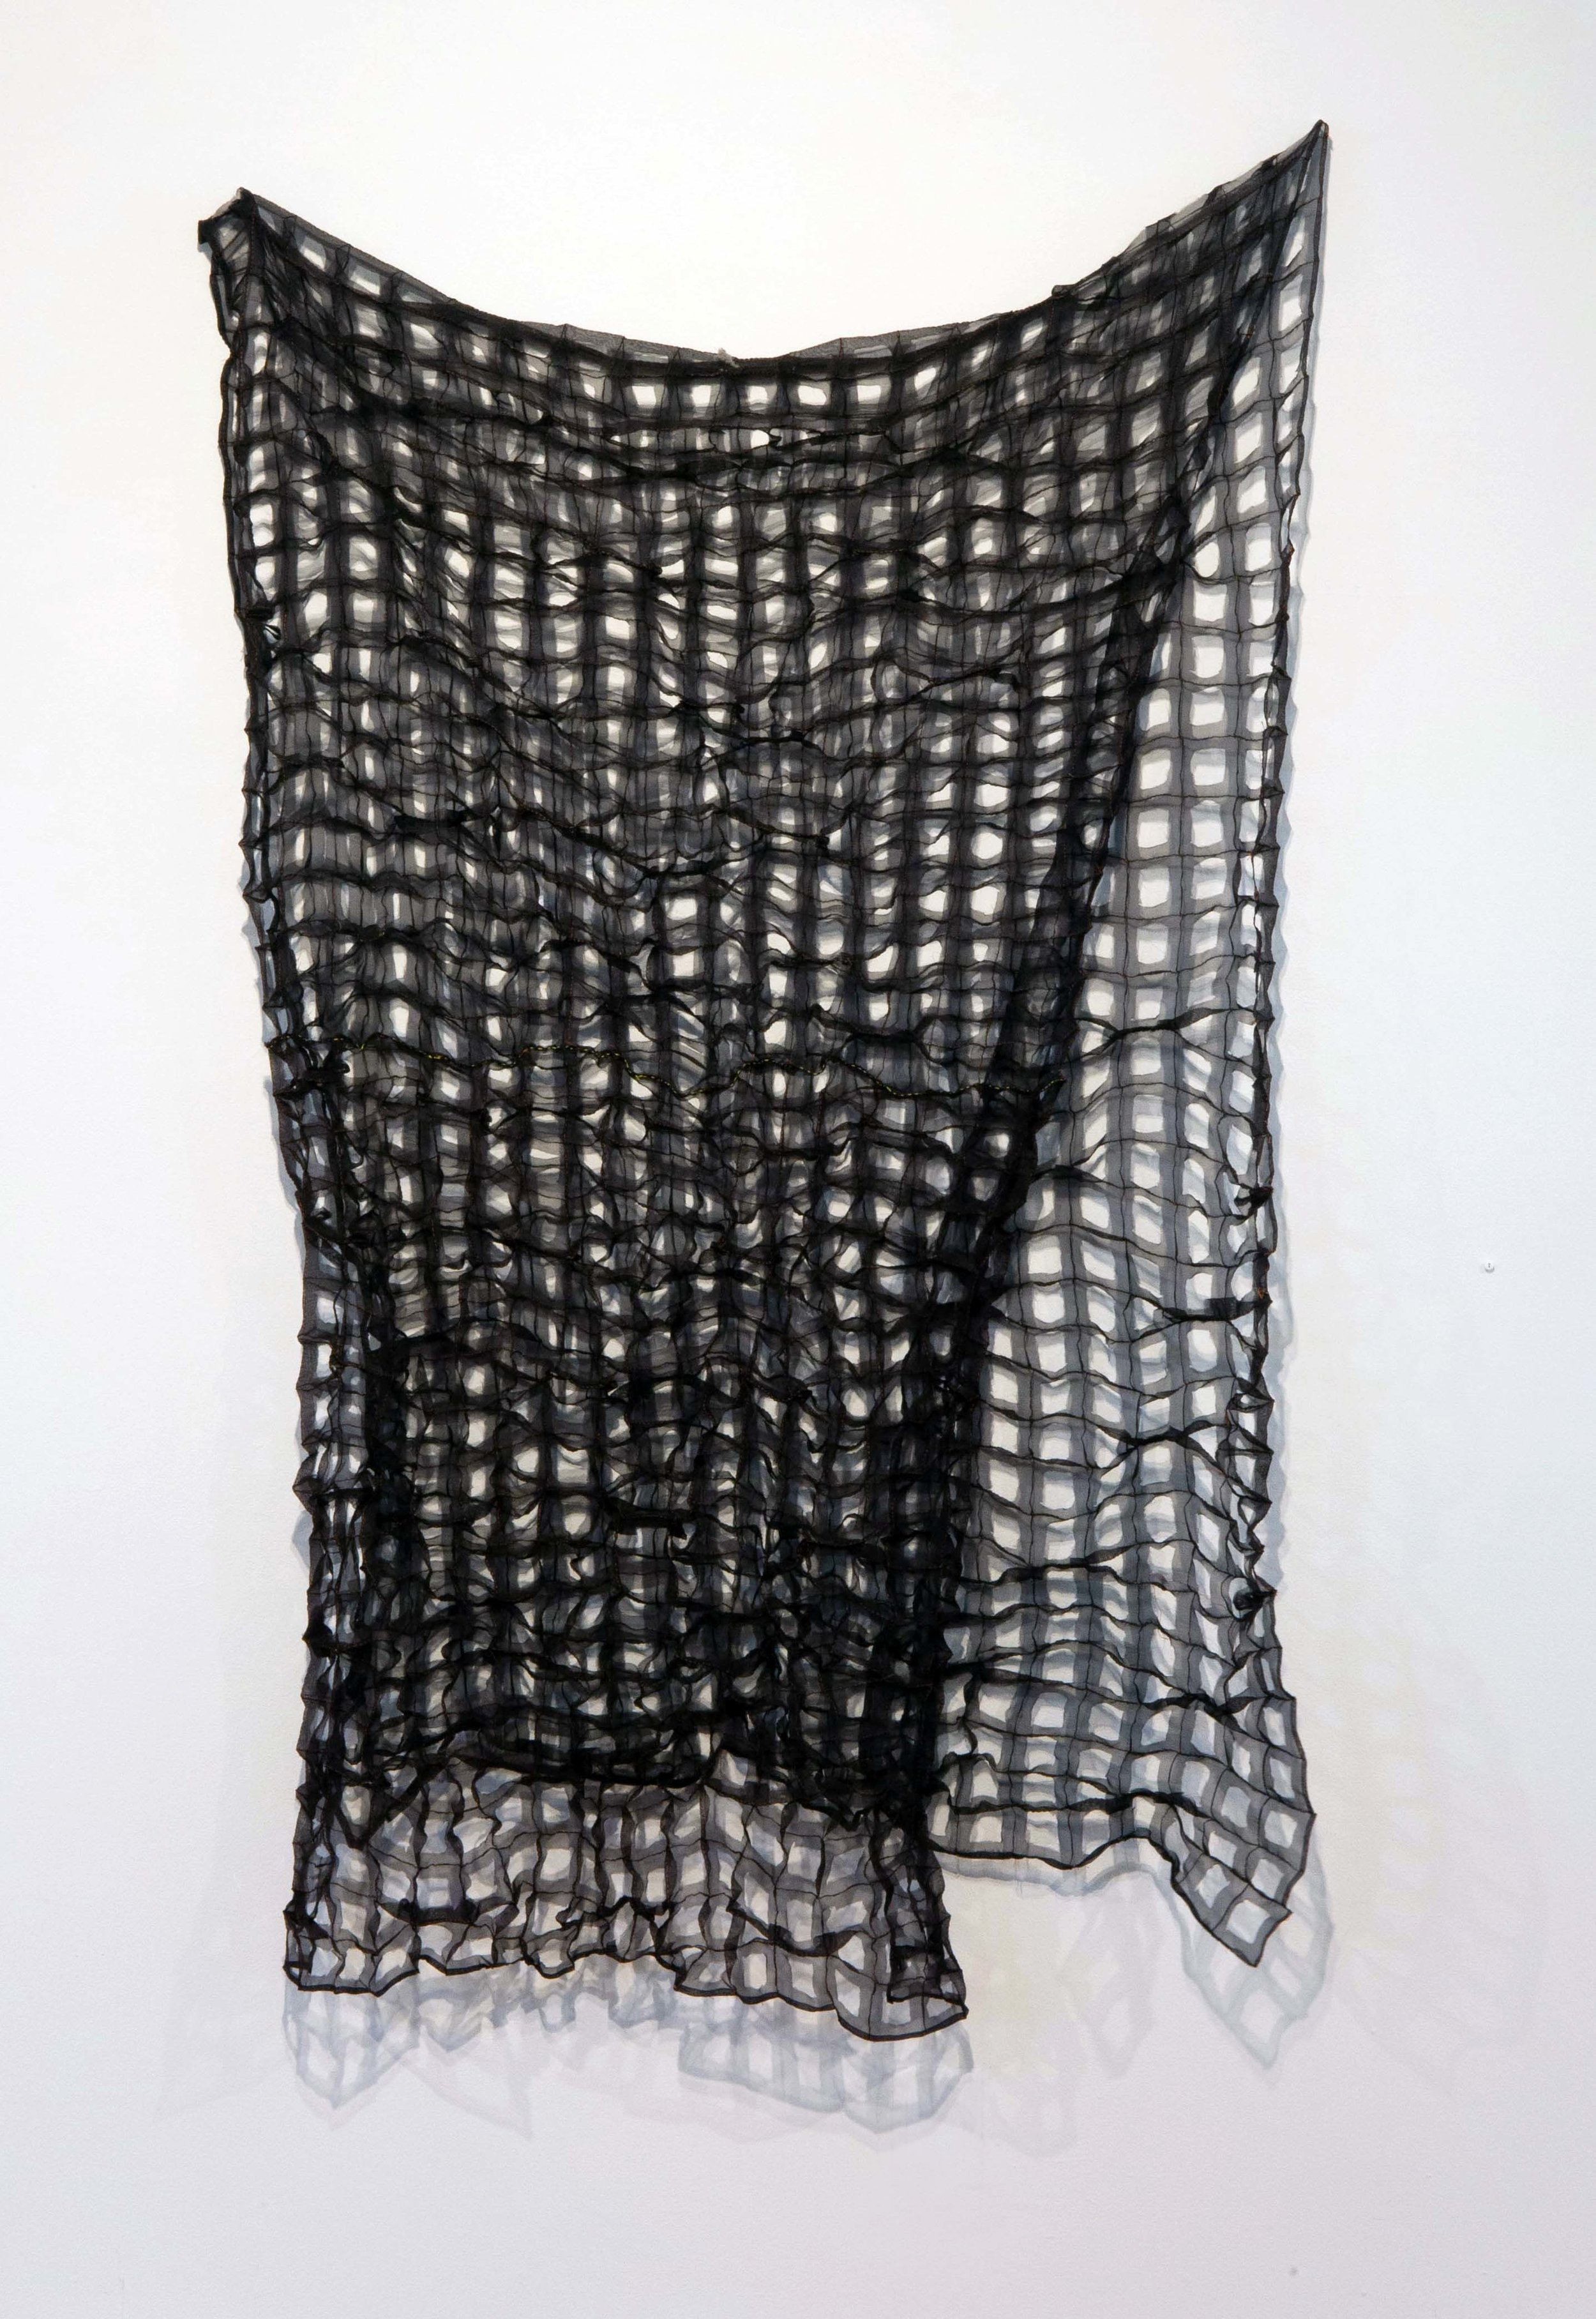 Stitched Grid   silk organza, thread  silk, dye stitching  2018